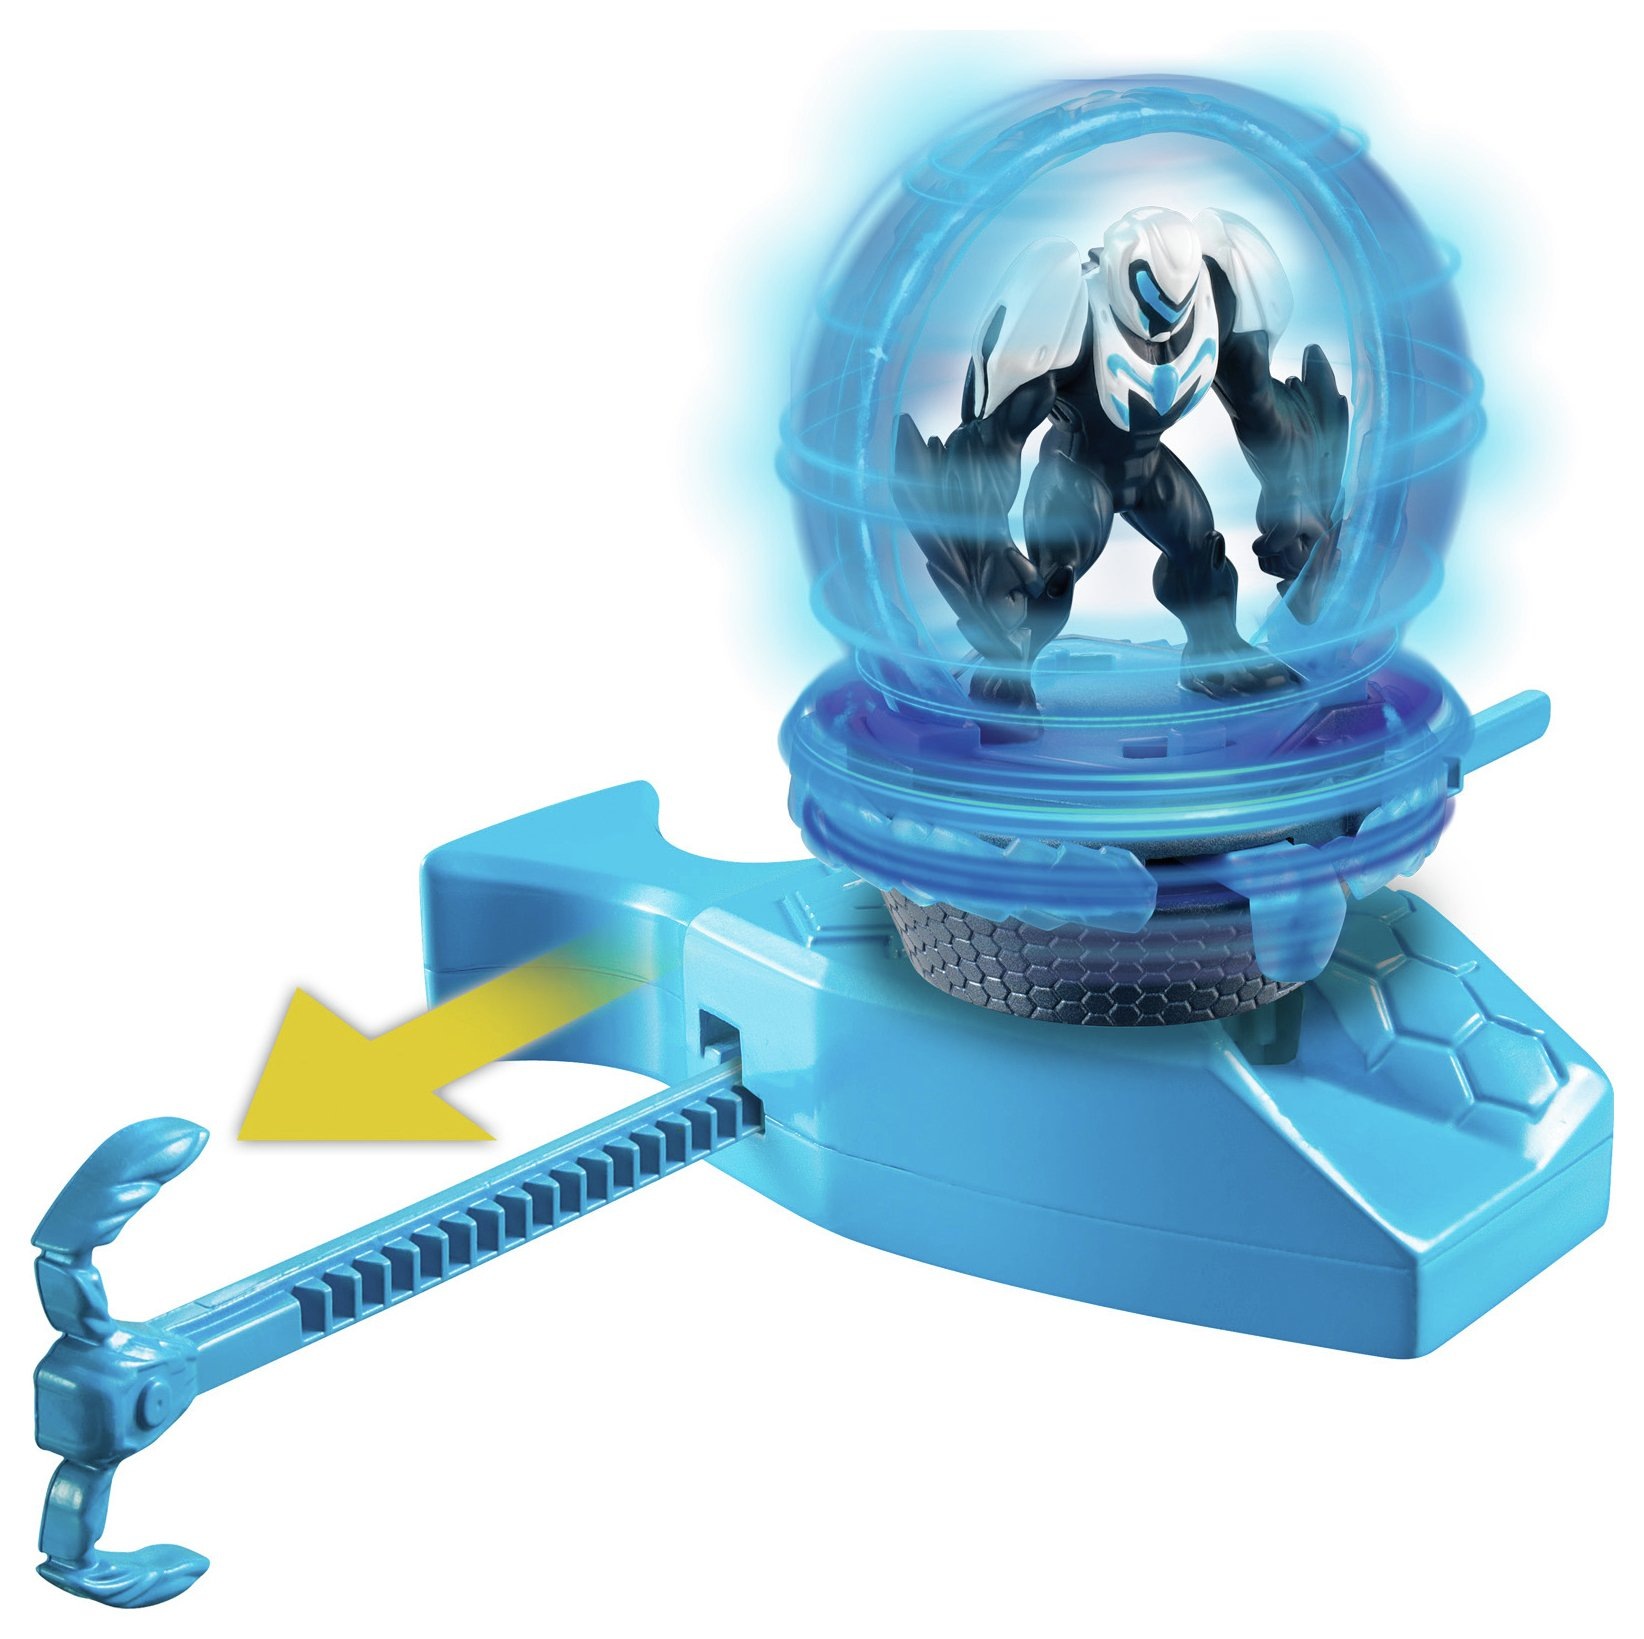 Buy Max Steel Spinning Fighter - Turbo Strength Max Figure | Action ...